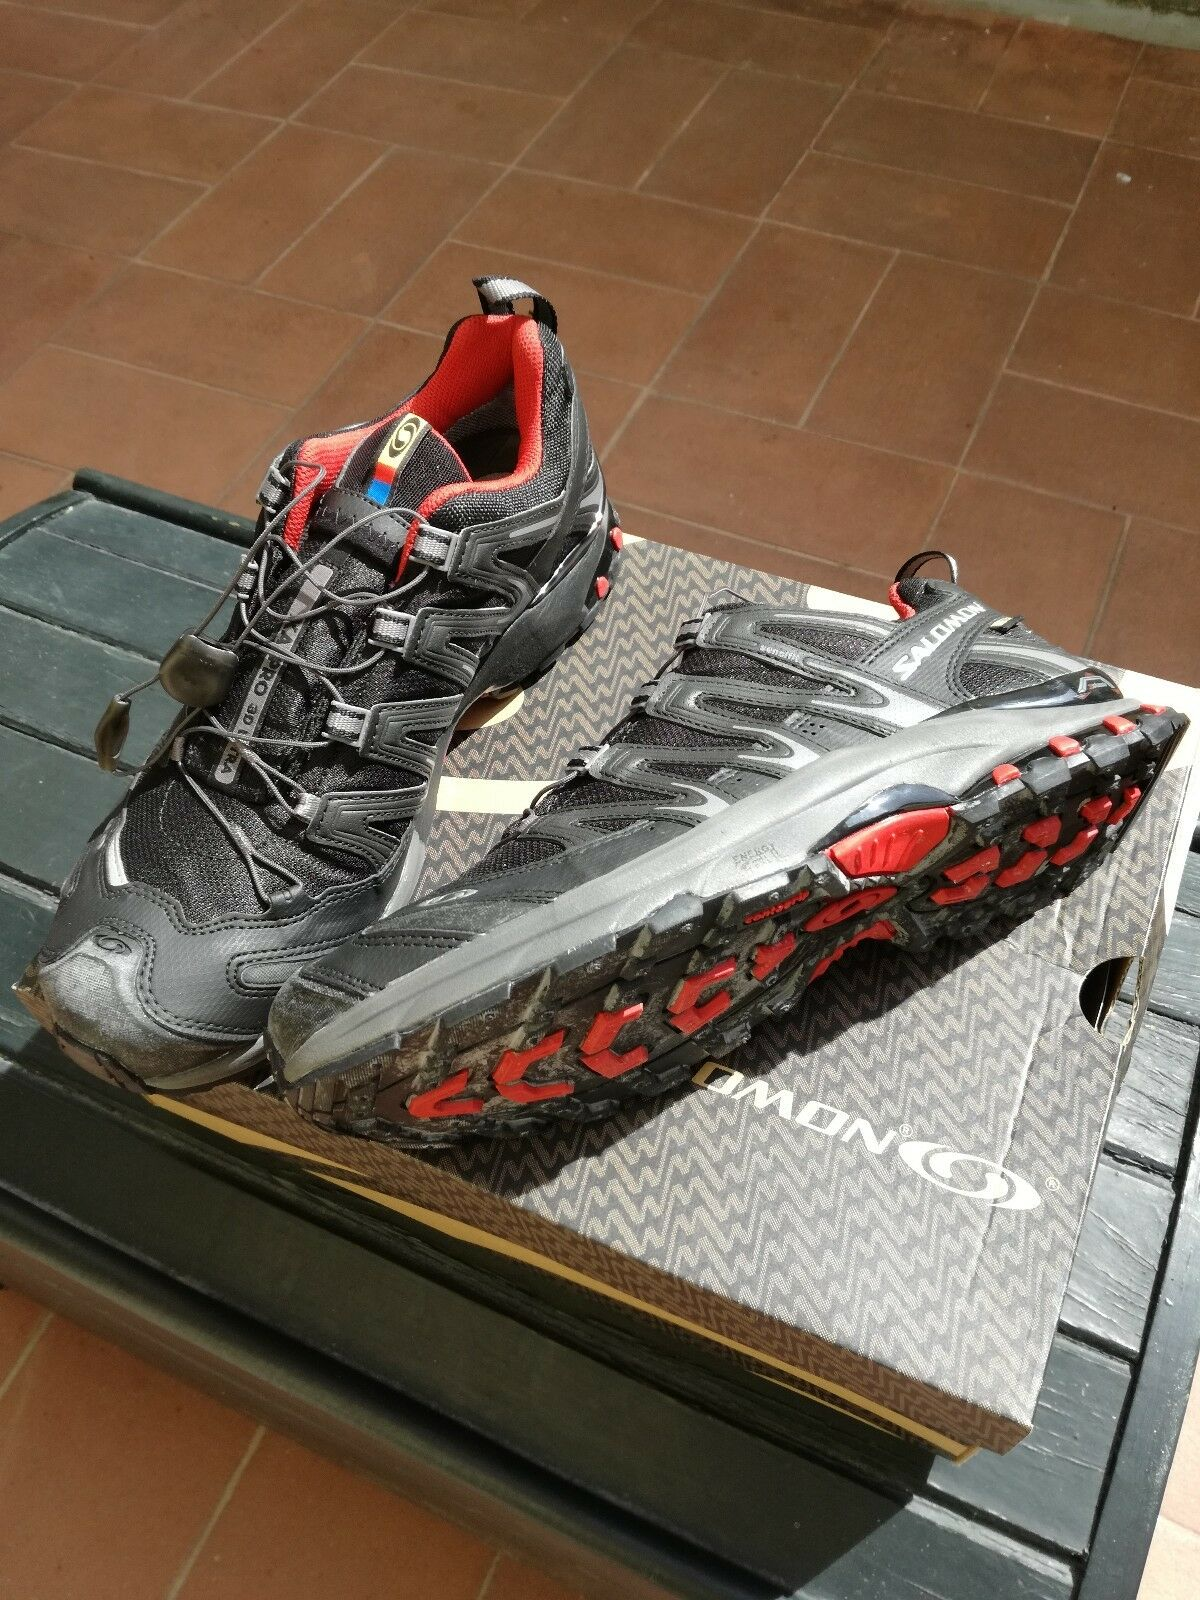 shoes SALOMON RUNNING men women XA PRO 3D ULTRA GTX GORETEX TAGLIA NUMERO 42